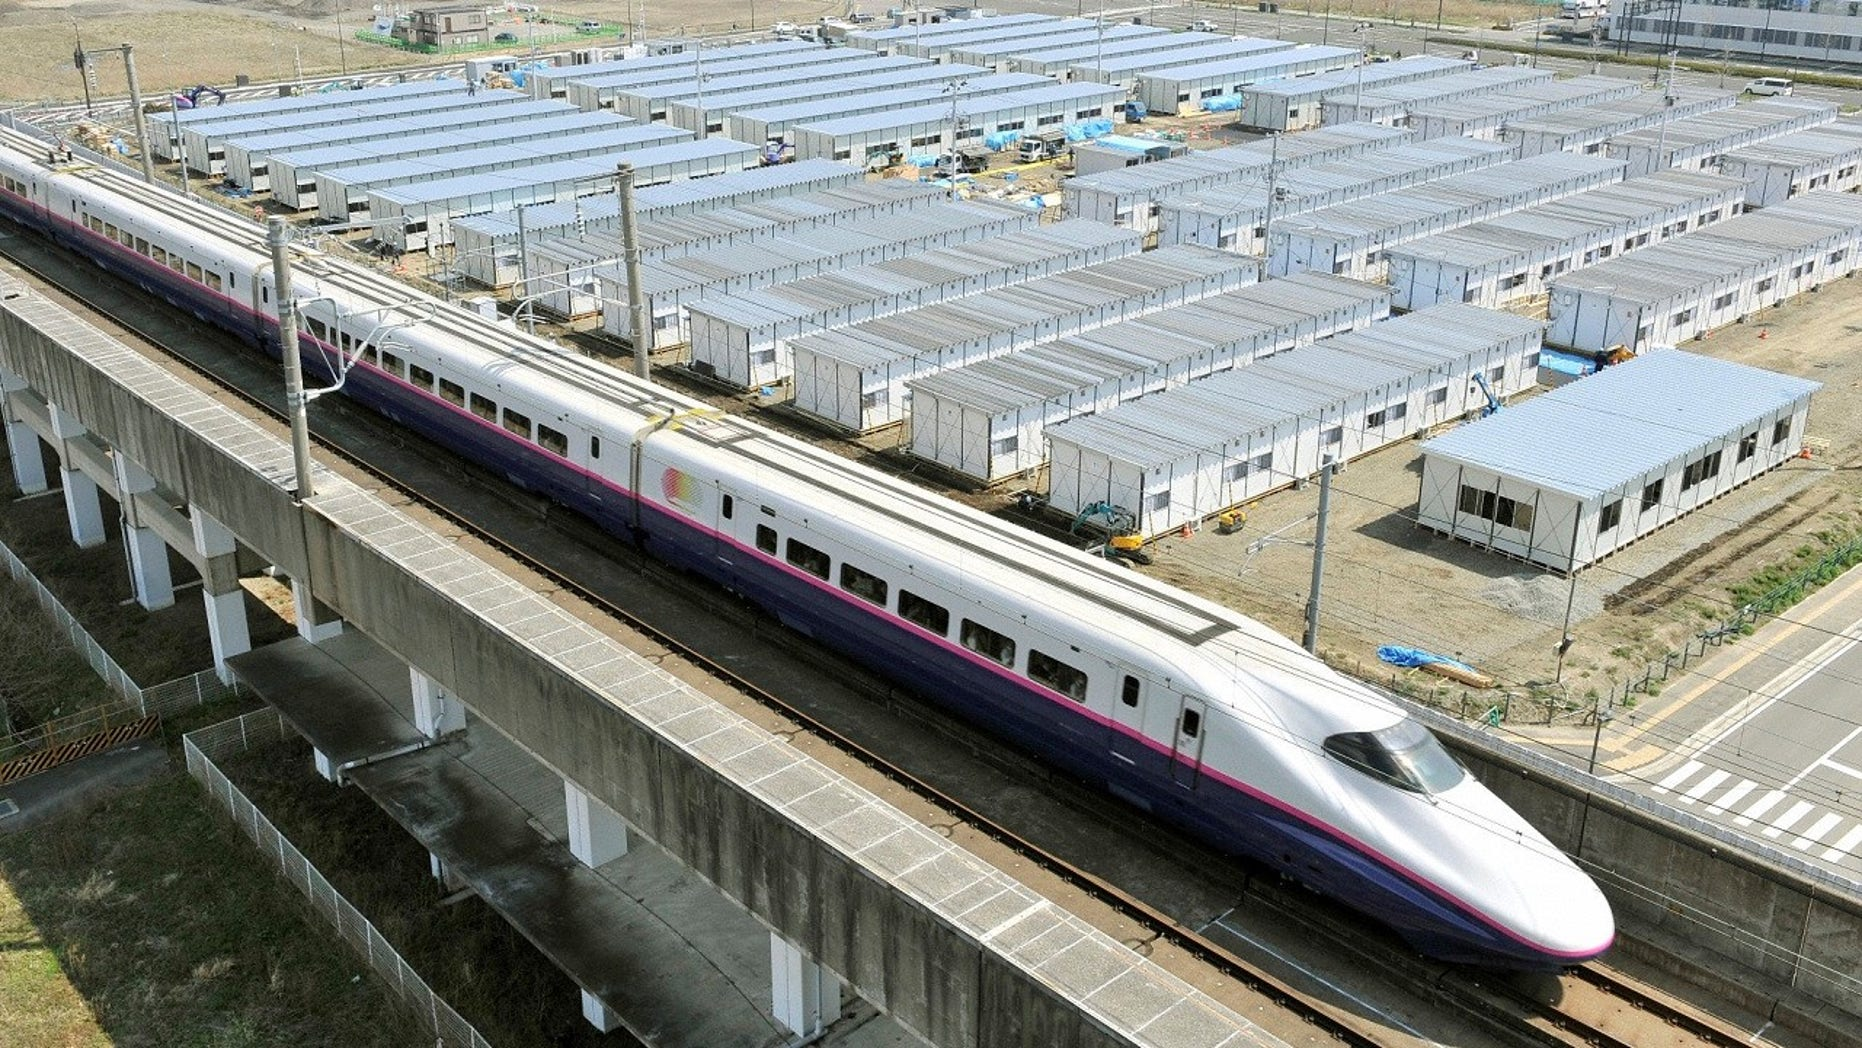 Japanese railwaymen apologized for the departure of the train 25 seconds earlier